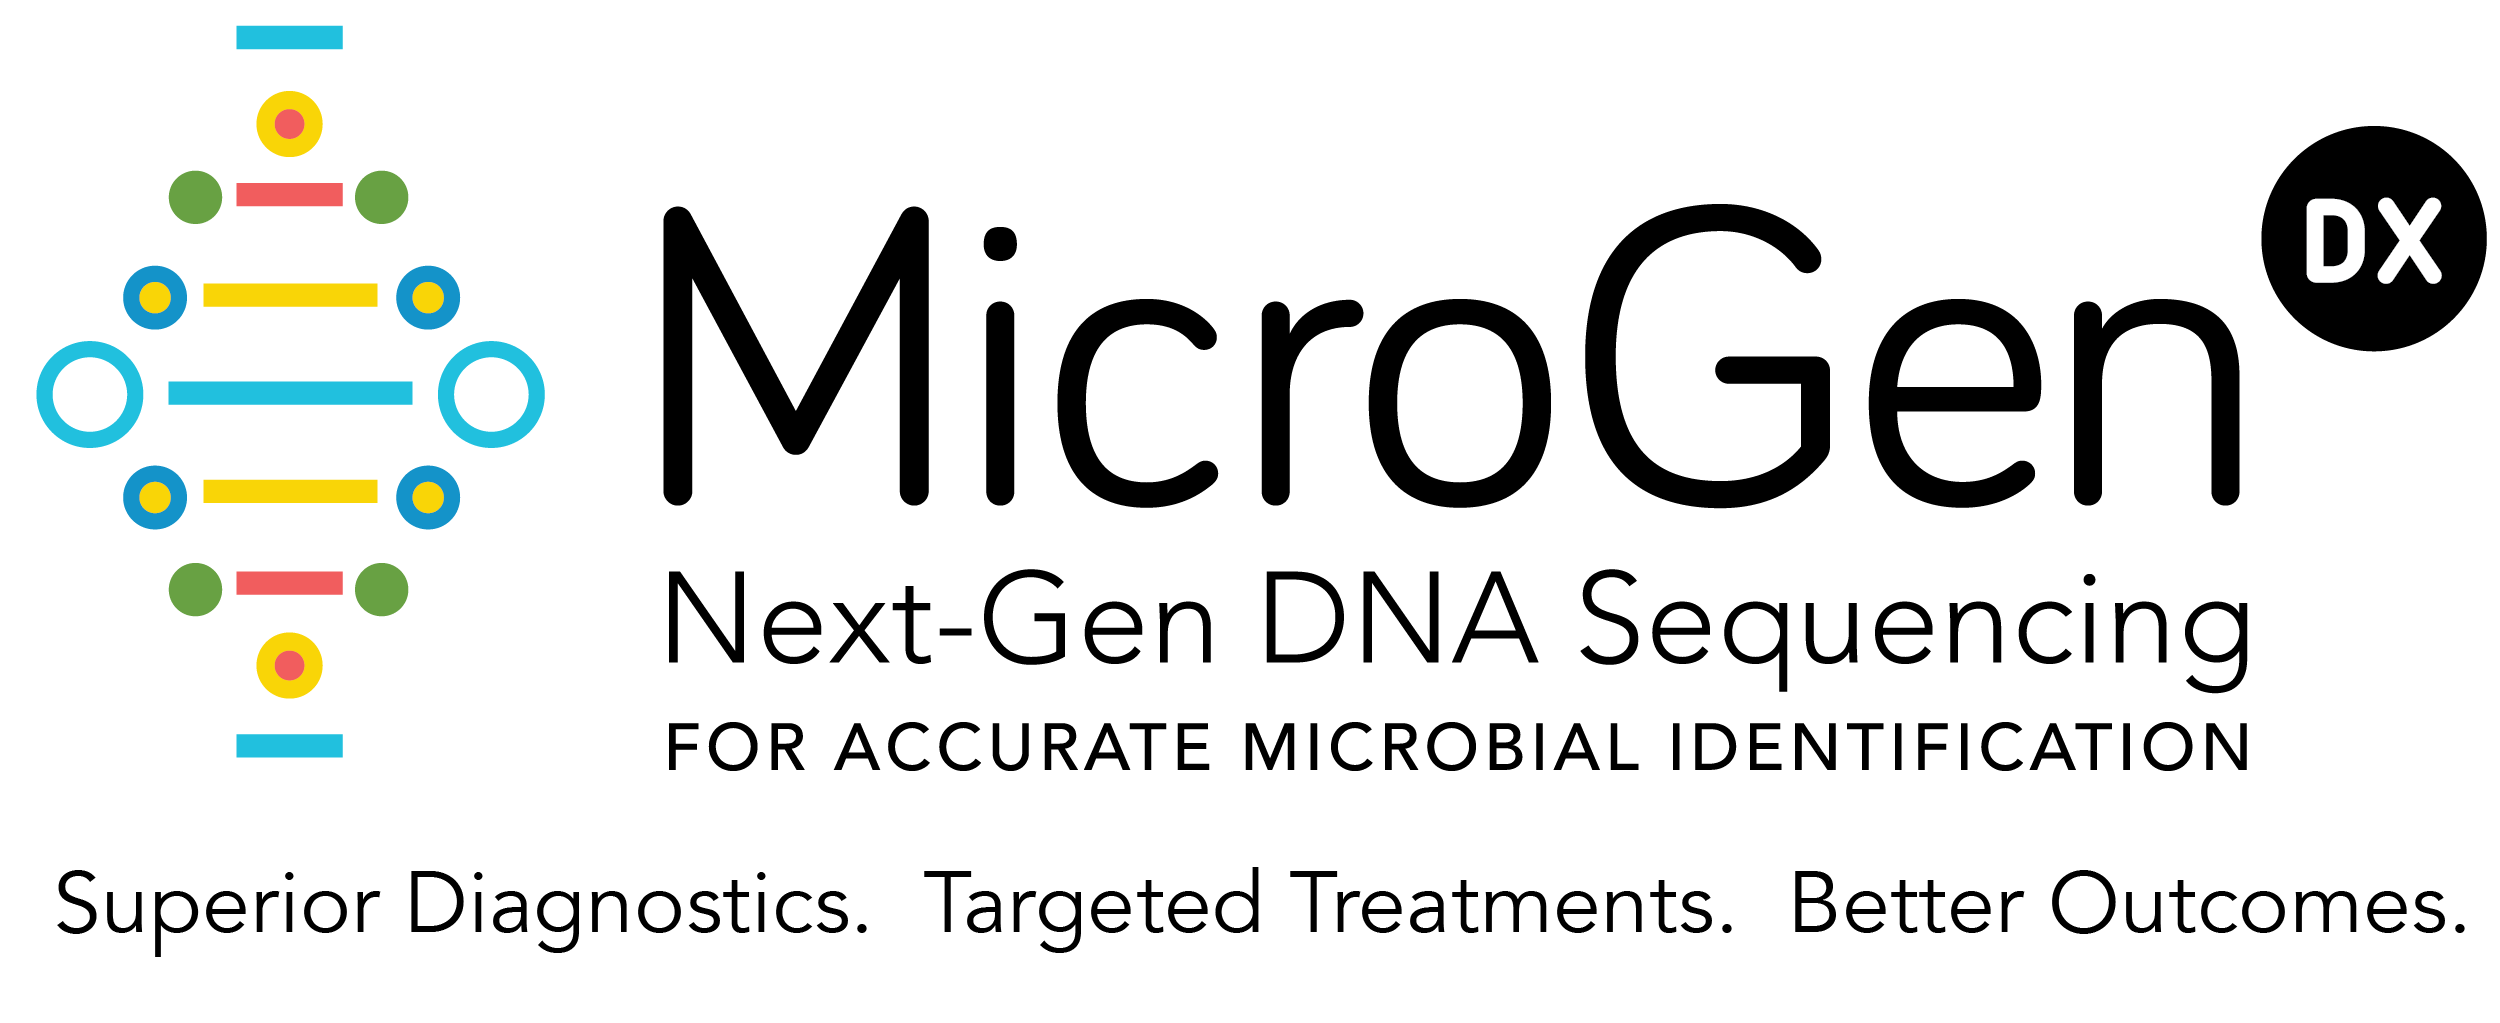 MicroGen DX: Superior Diagnostics. Targeted Treatments. Better Outcomes.